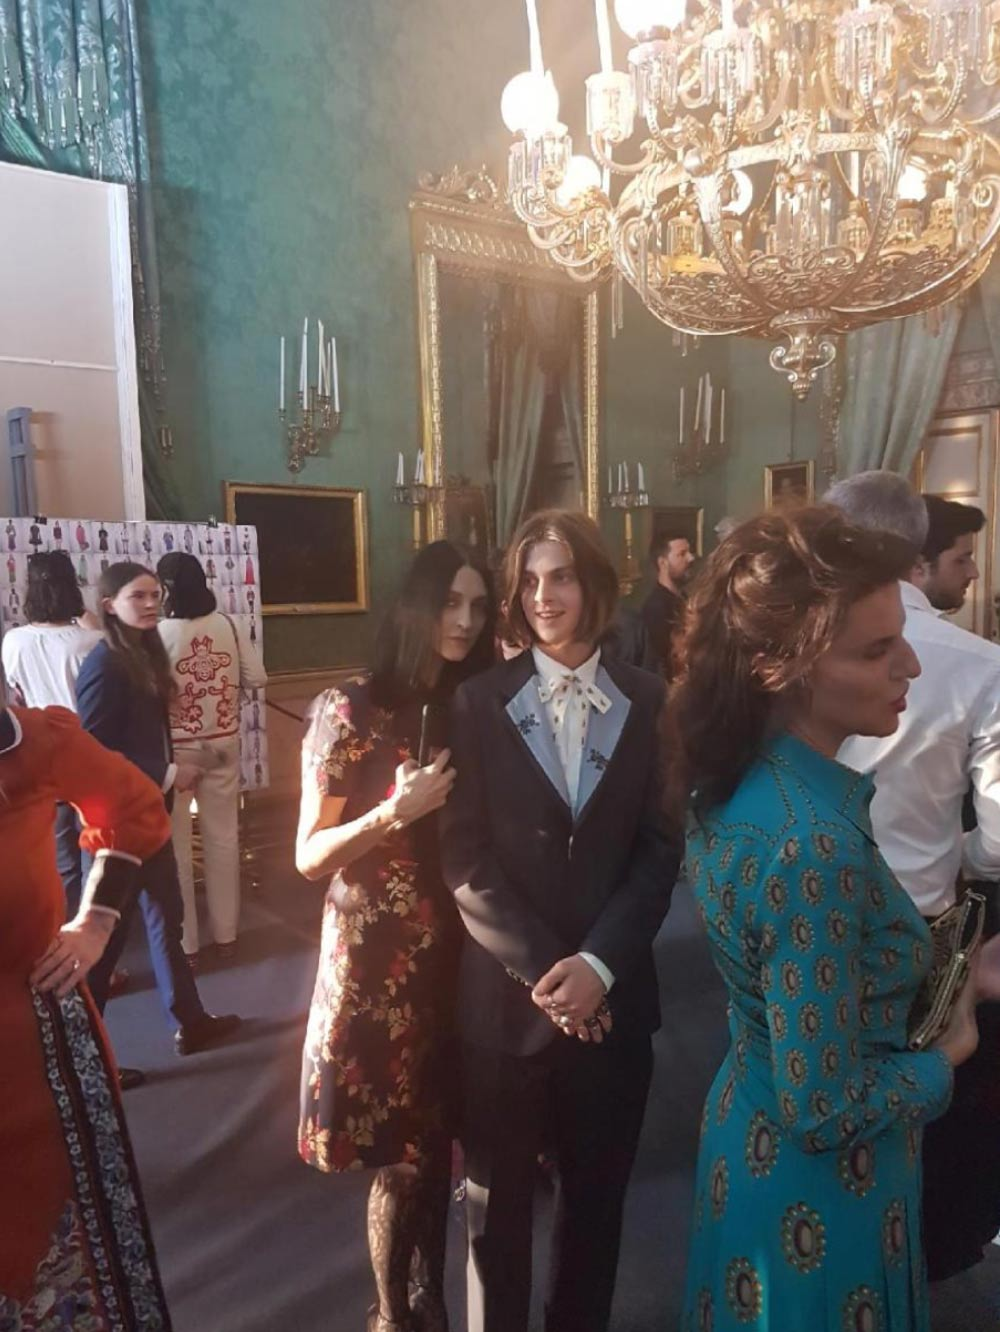 Susie and Earl Cave at The Gucci Cruise 2018 Show